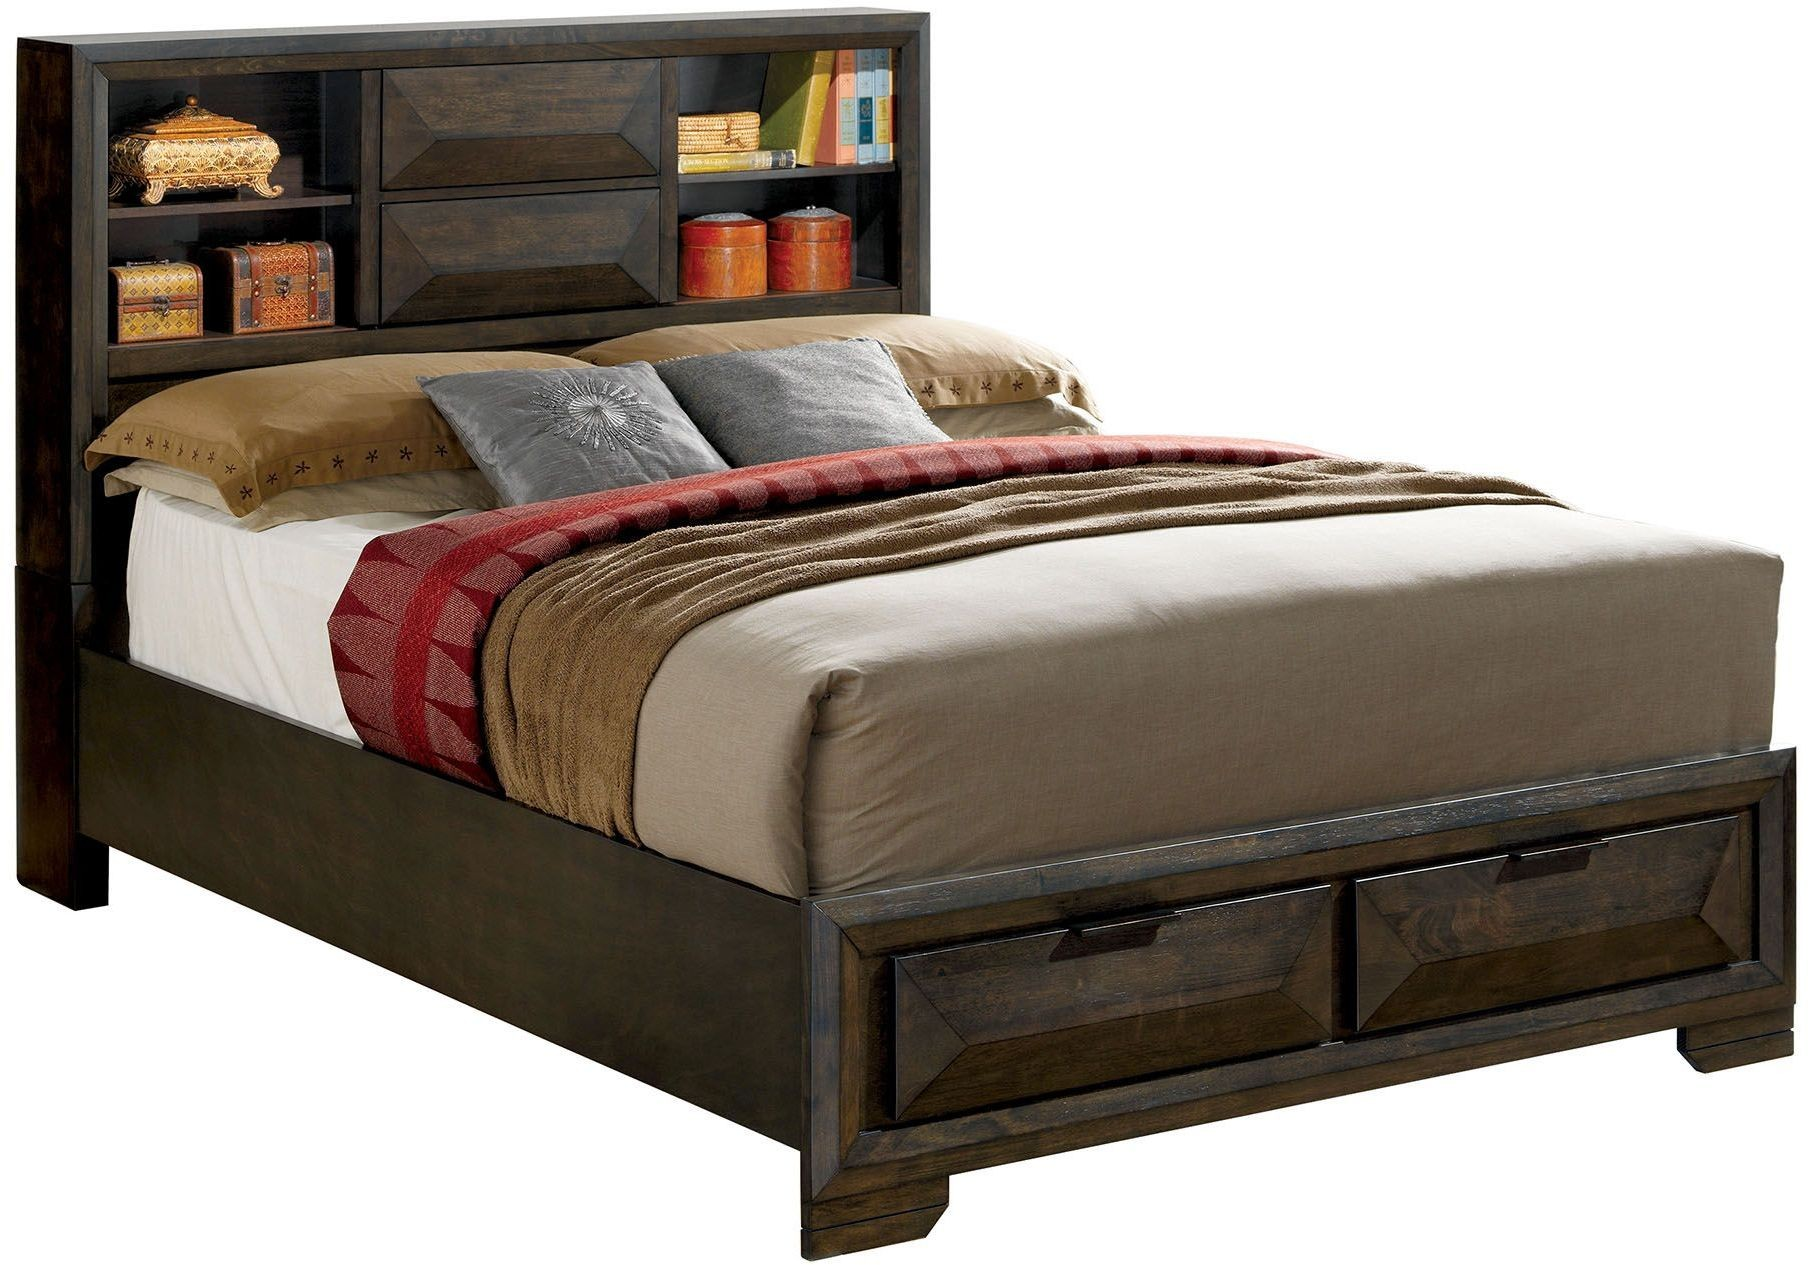 White Platform Bed Cal King